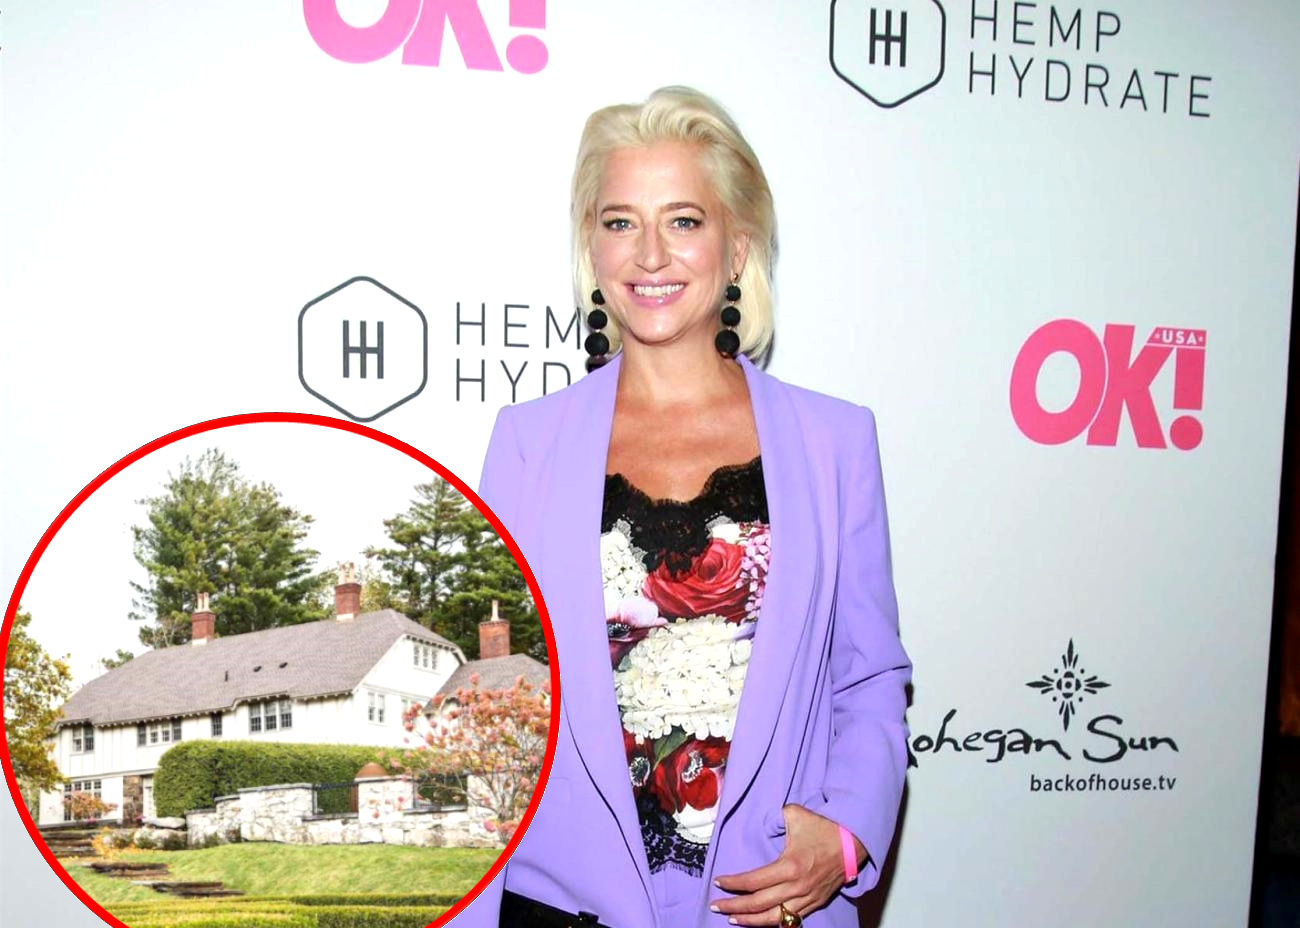 """PHOTOS: 'RHONY' Alum Dorinda Medley to List Berkshires Mansion on Airbnb, Find Out How it Costs to """"Make It Nice"""" at the Bluestone Manor"""